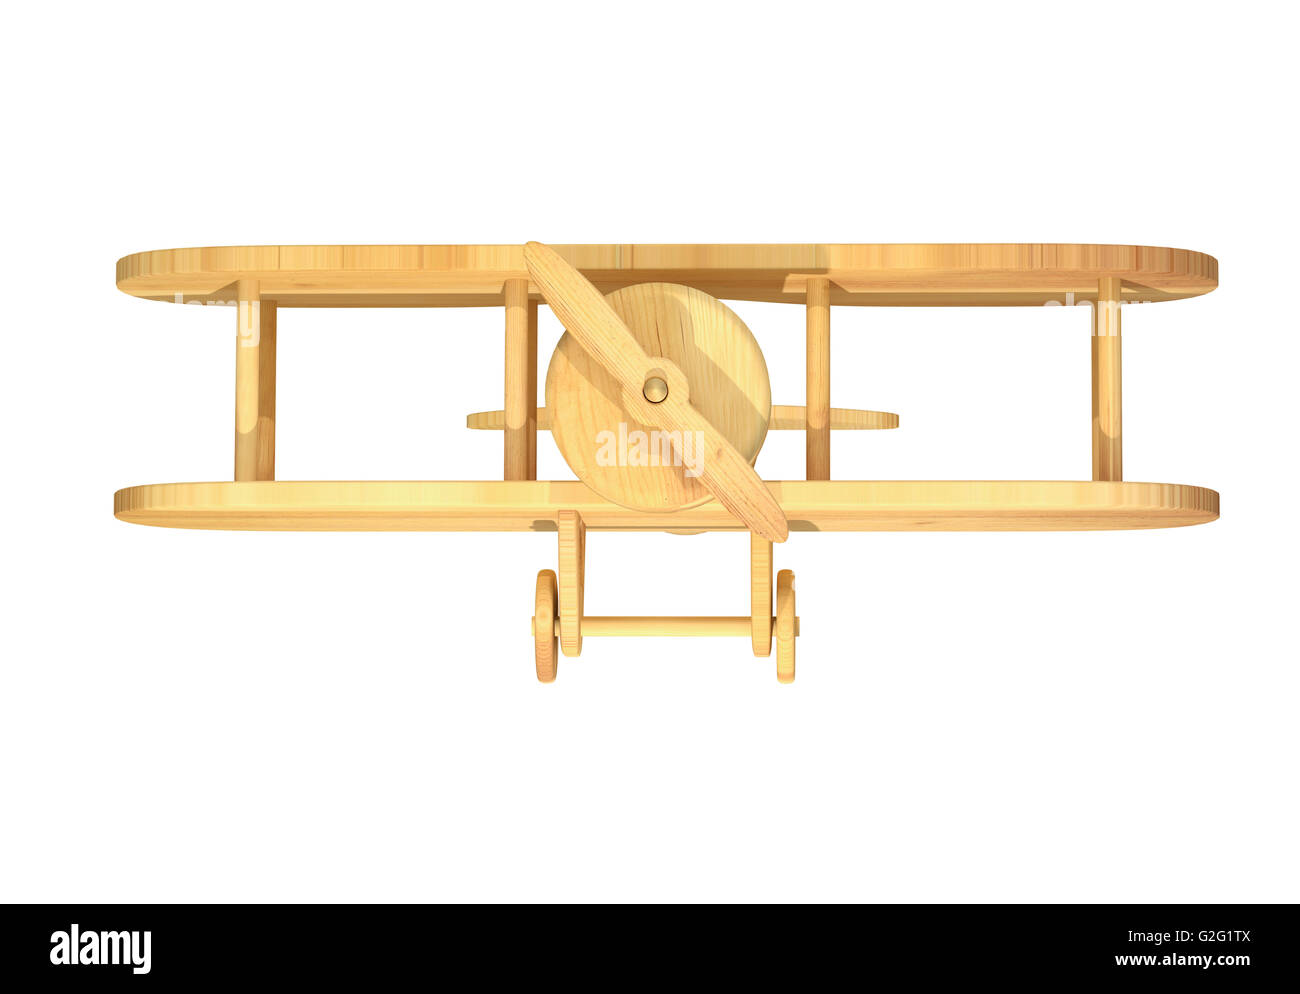 3d rendering of close-up of wooden plane on white background. Isolated - Stock Image